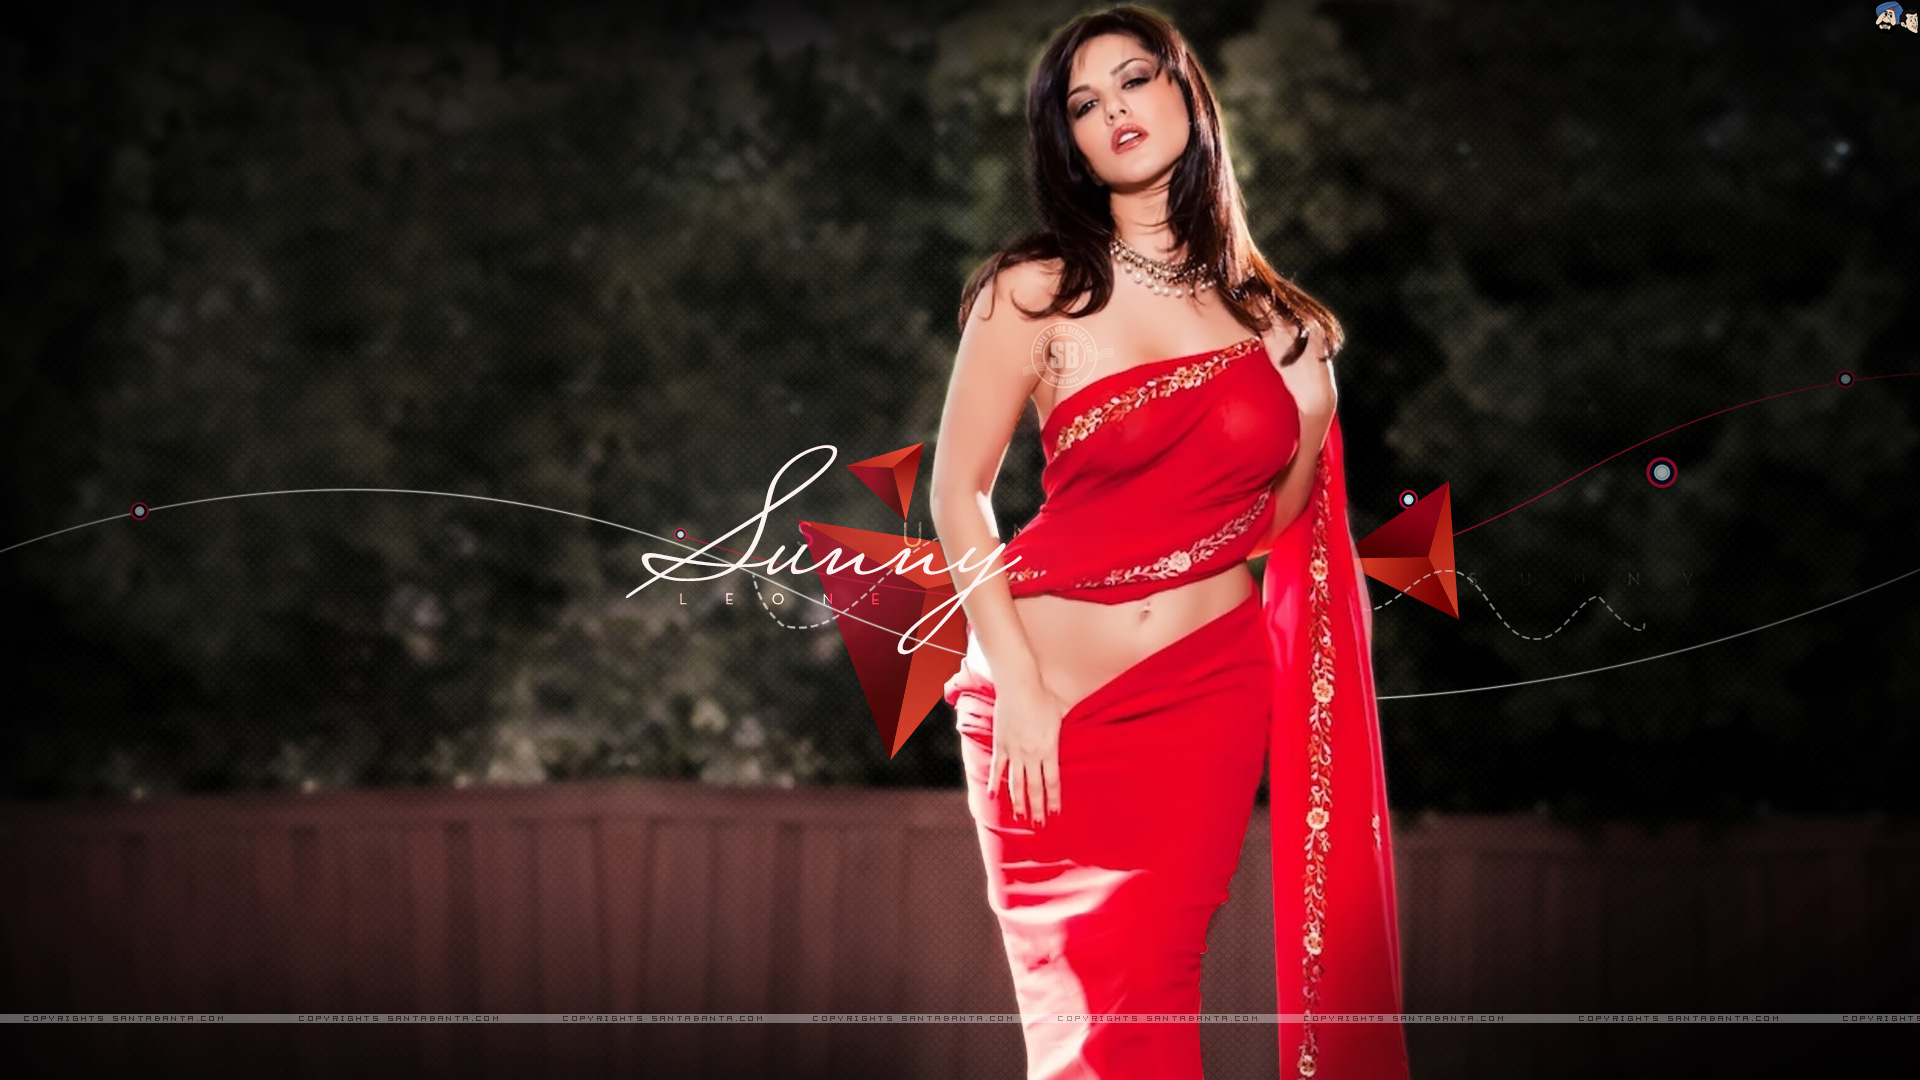 sunny leone hd wallpapers 1920x1080 - sf wallpaper